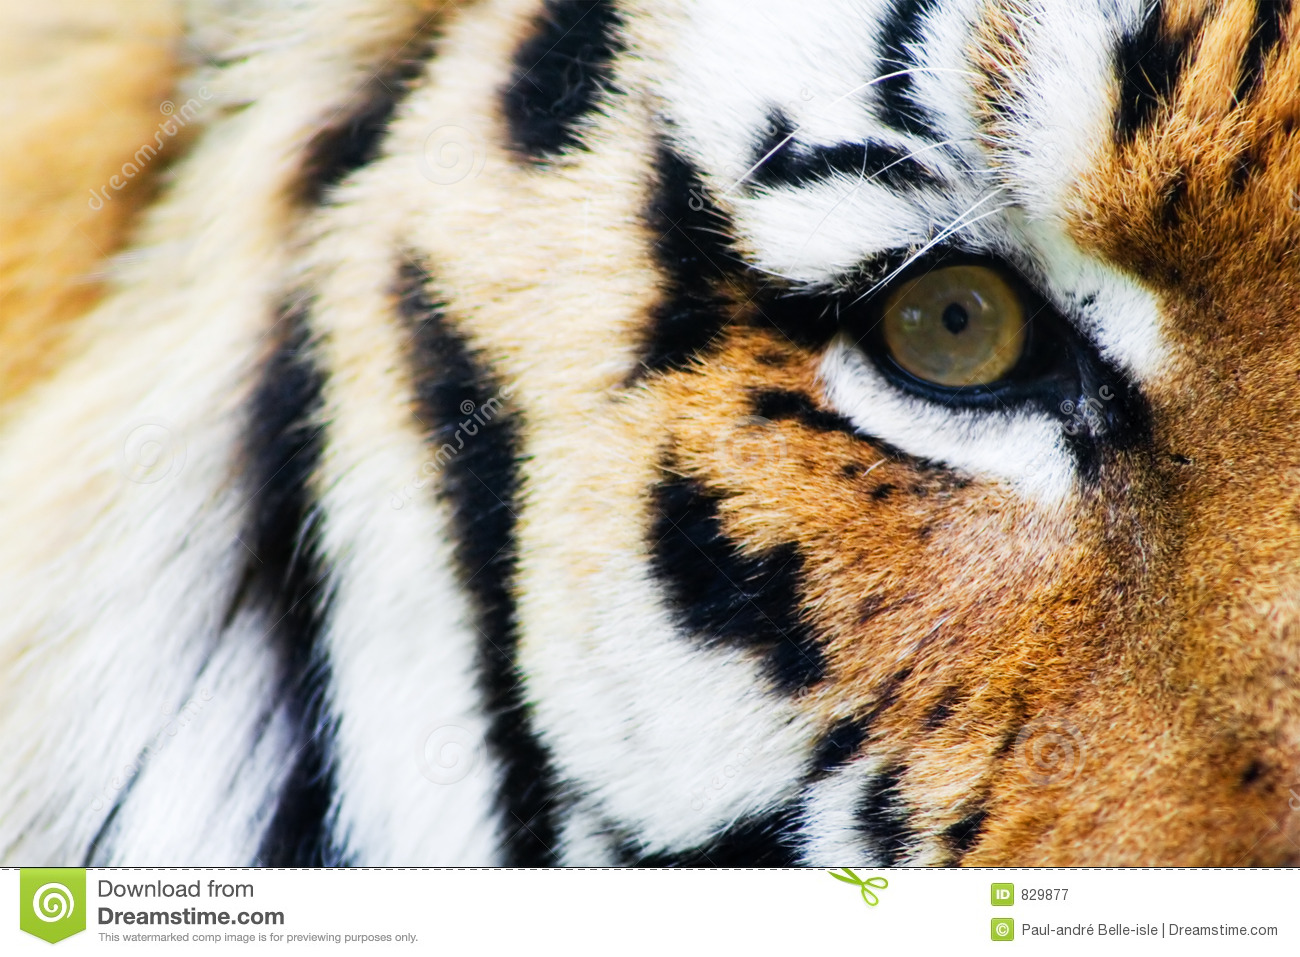 Free Royalty Free Photos Images Tiger